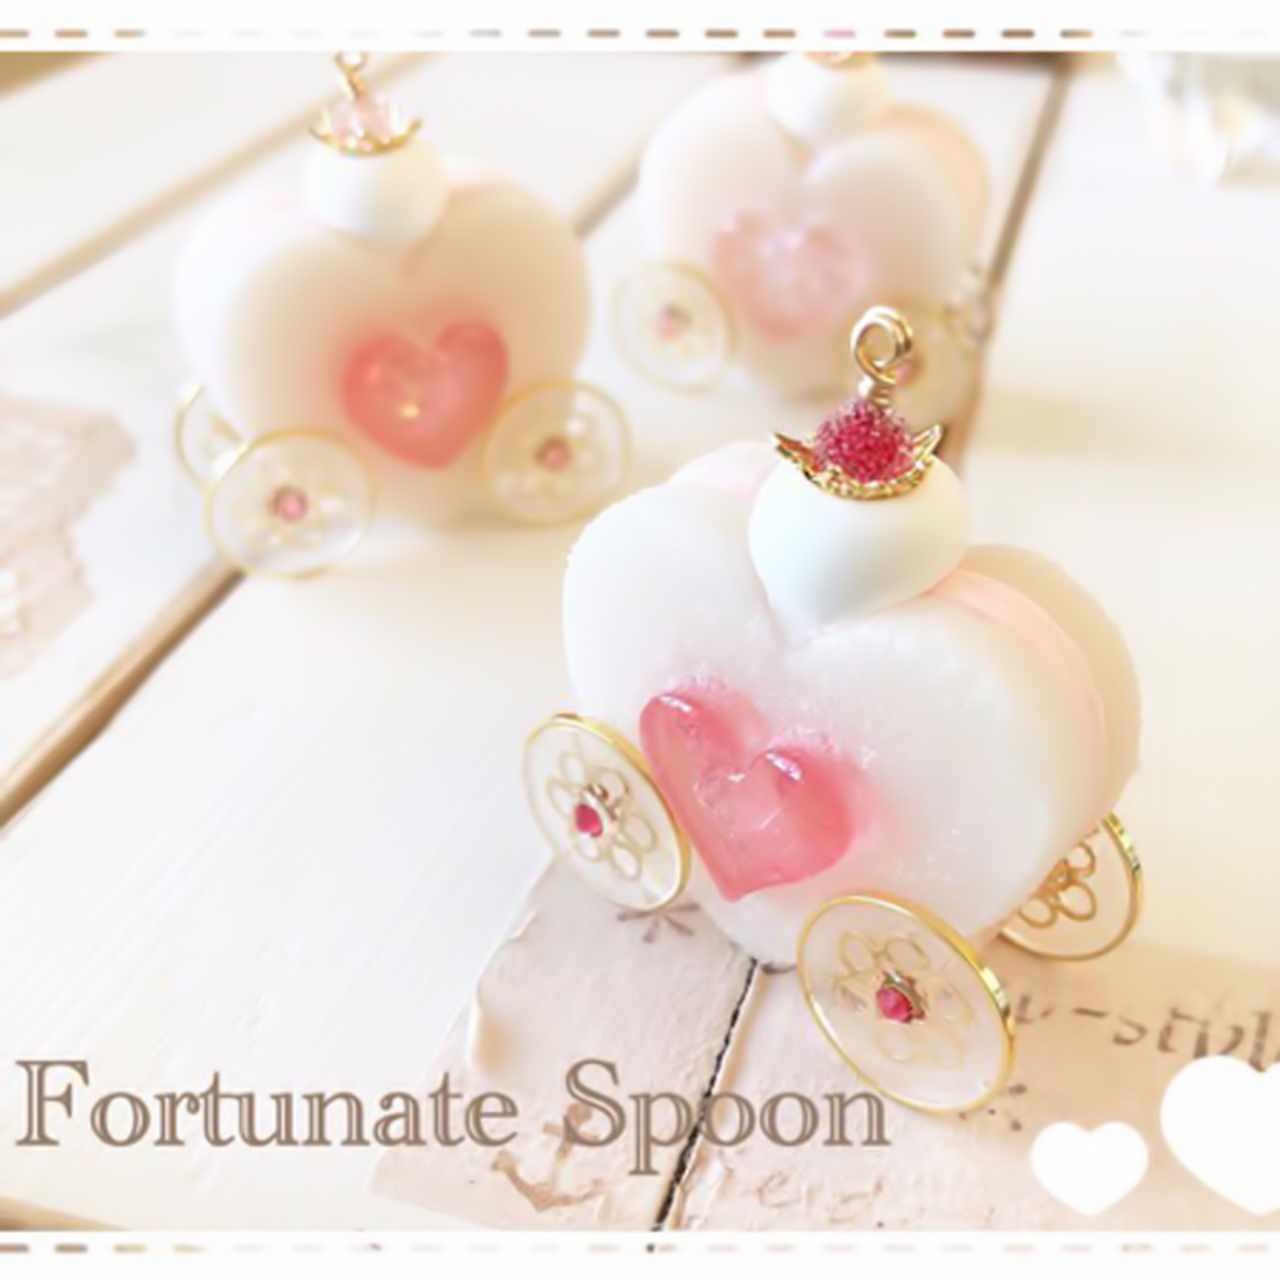 Fortunate Spoon - フォーチュネイトスプーン